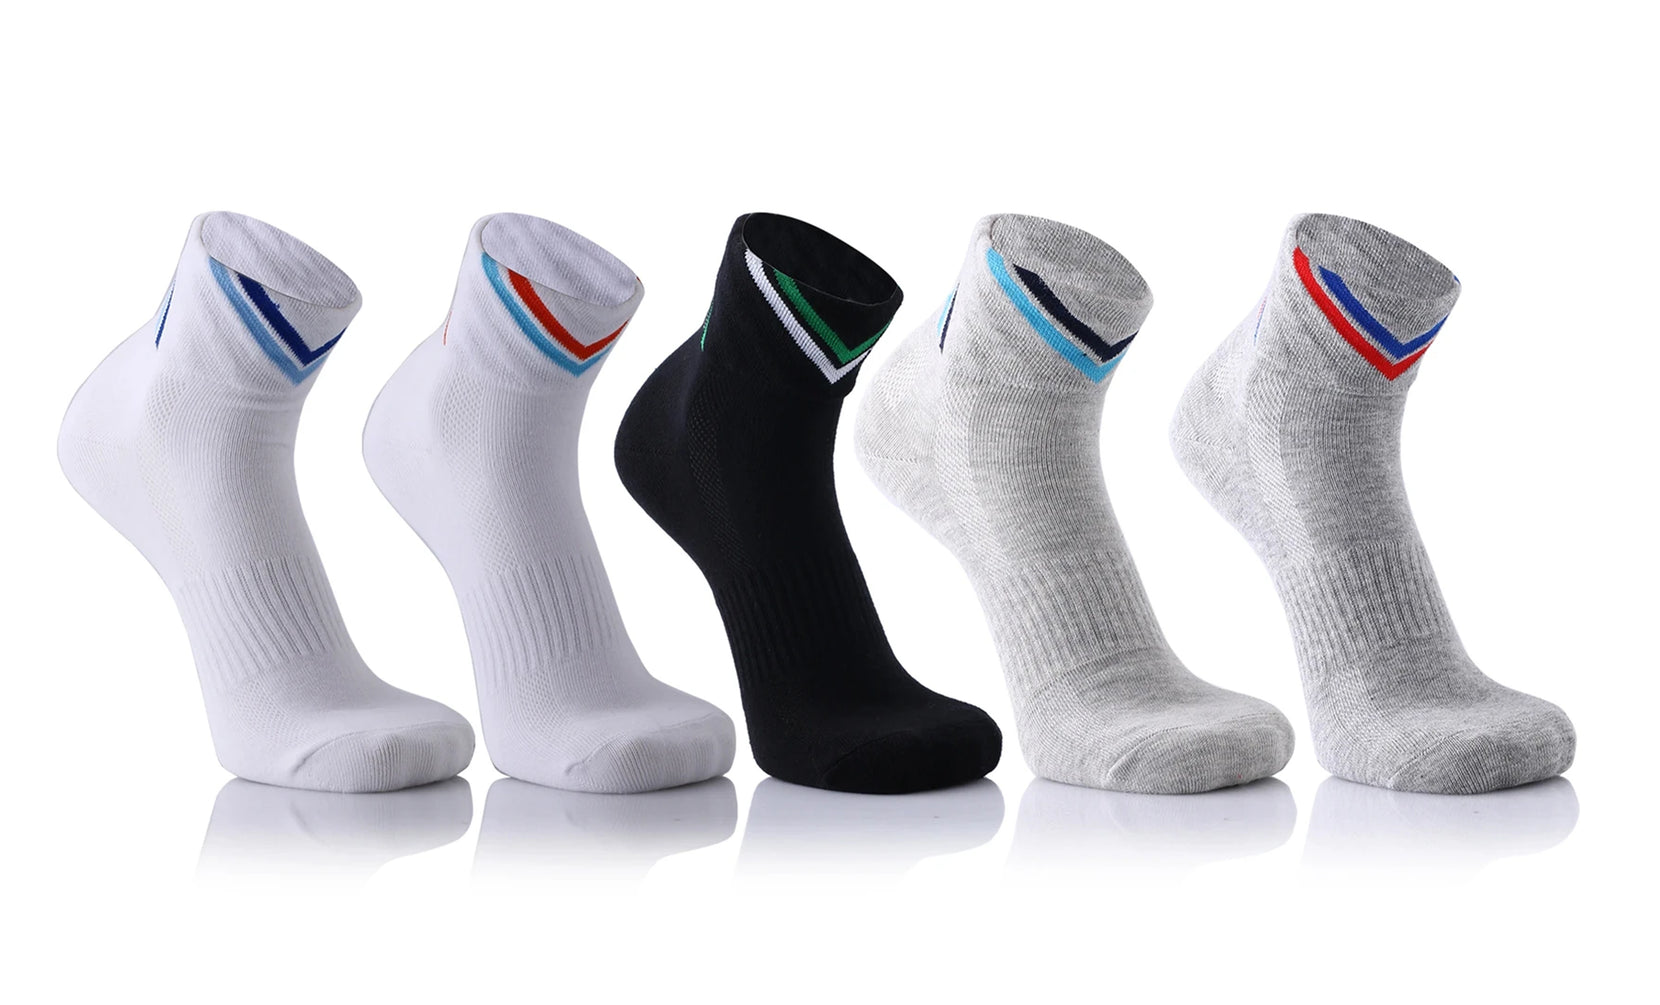 5-Pairs : Unisex Quick Dry Ankle Length Compression Socks